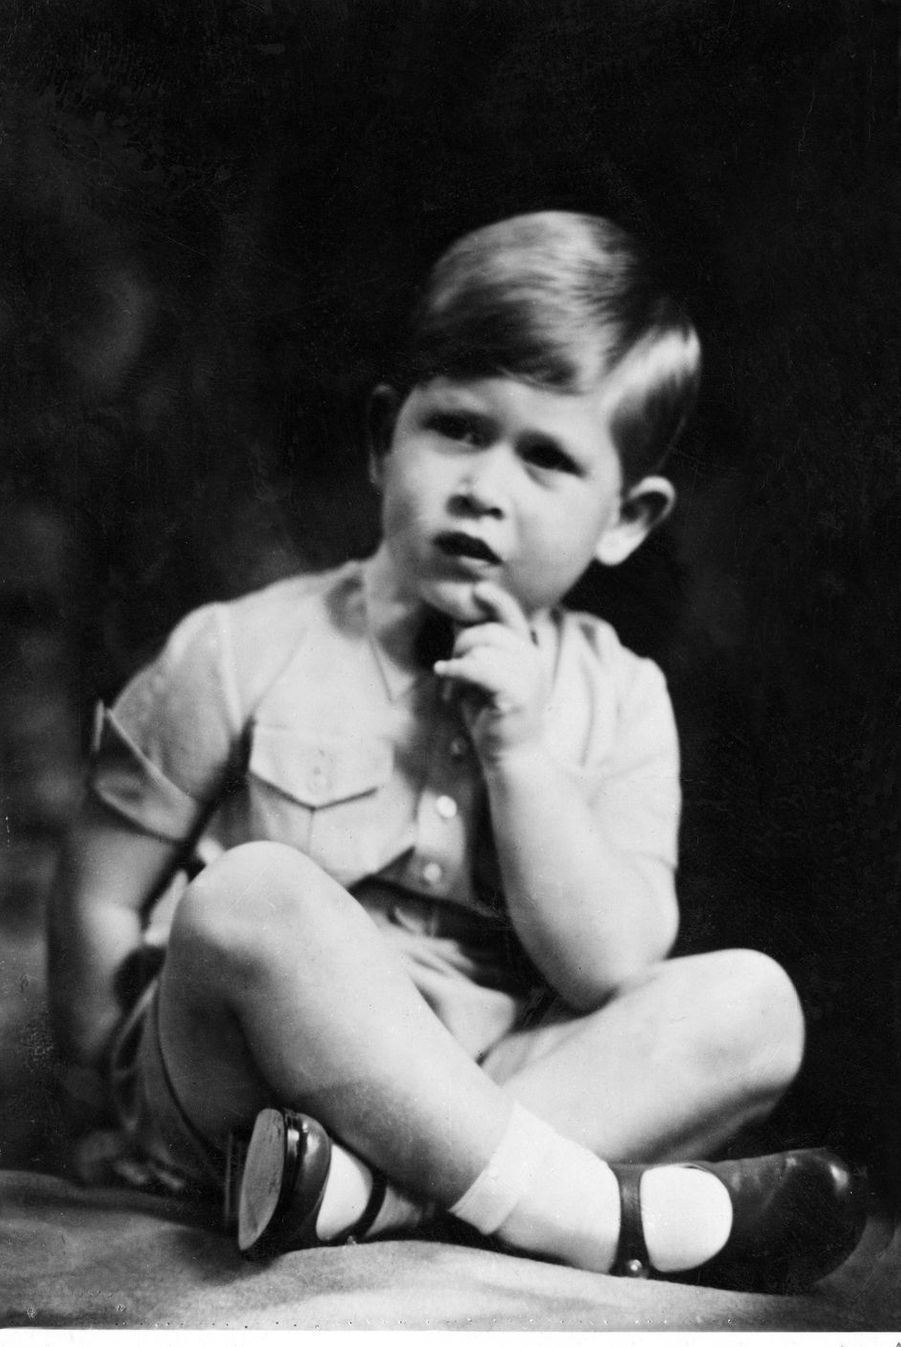 Le prince Charles, vers 1954